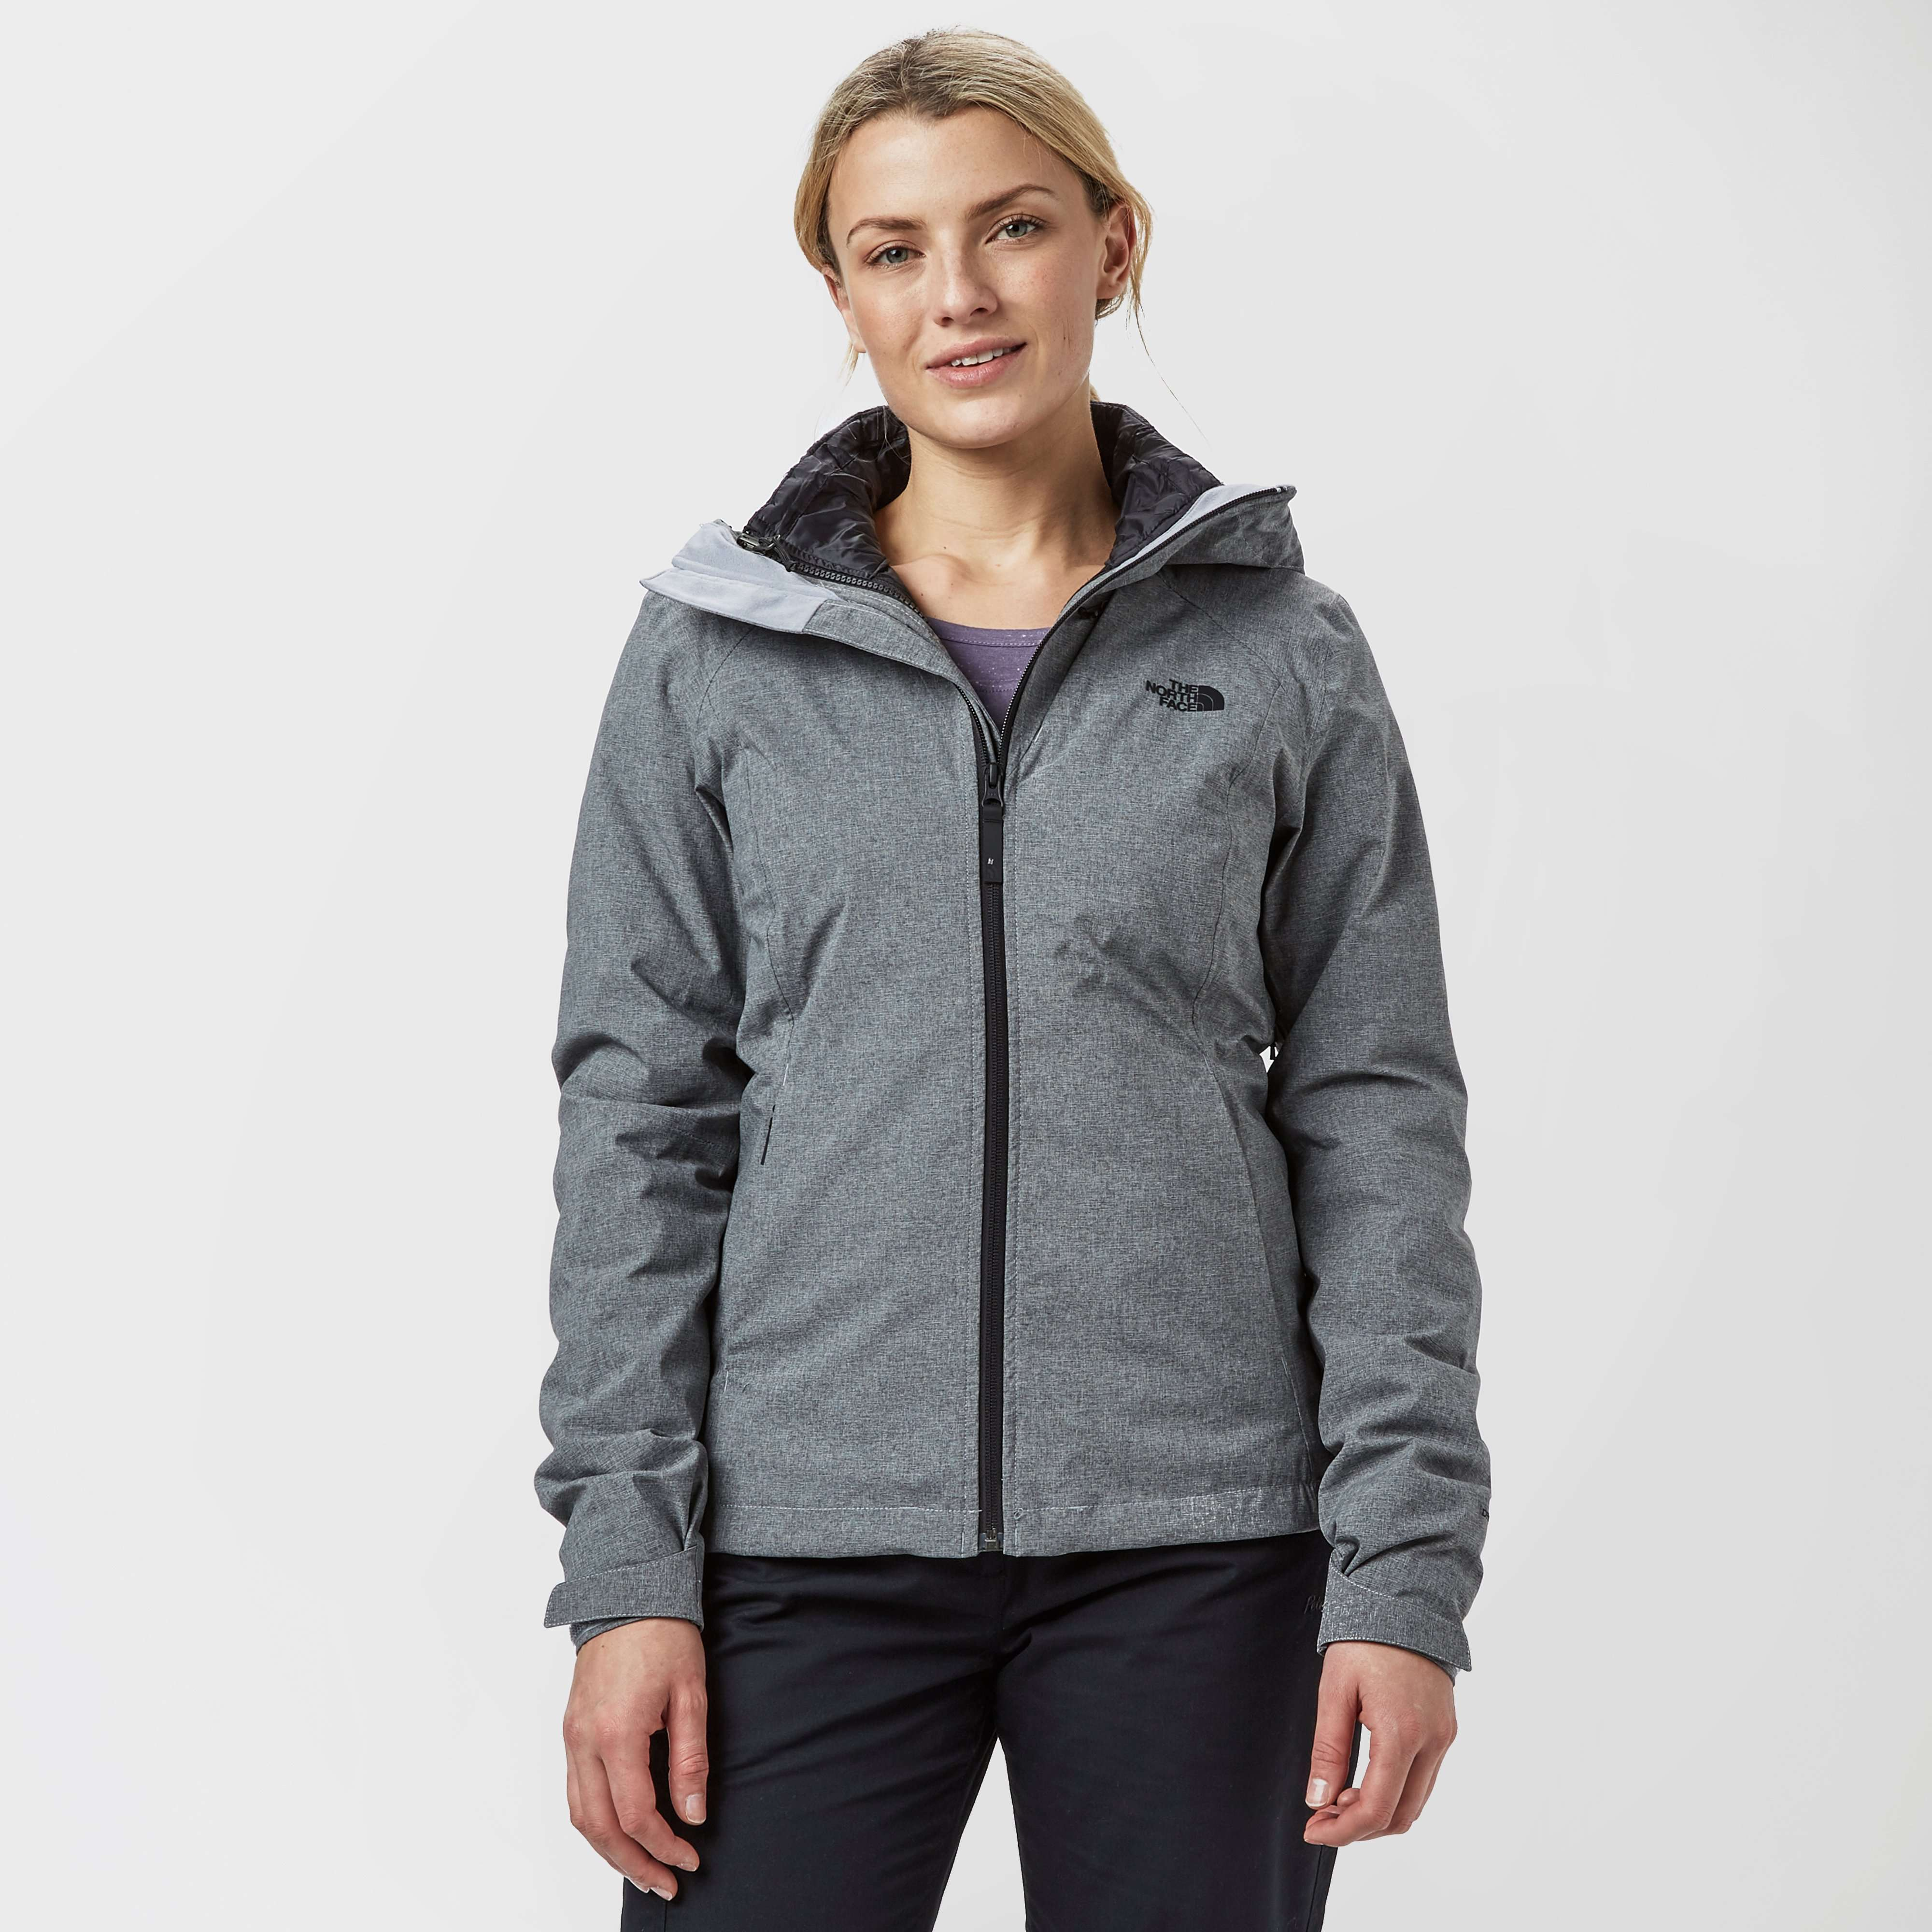 THE NORTH FACE Women's Thermoball Triclimate® 3 in 1 Jacket